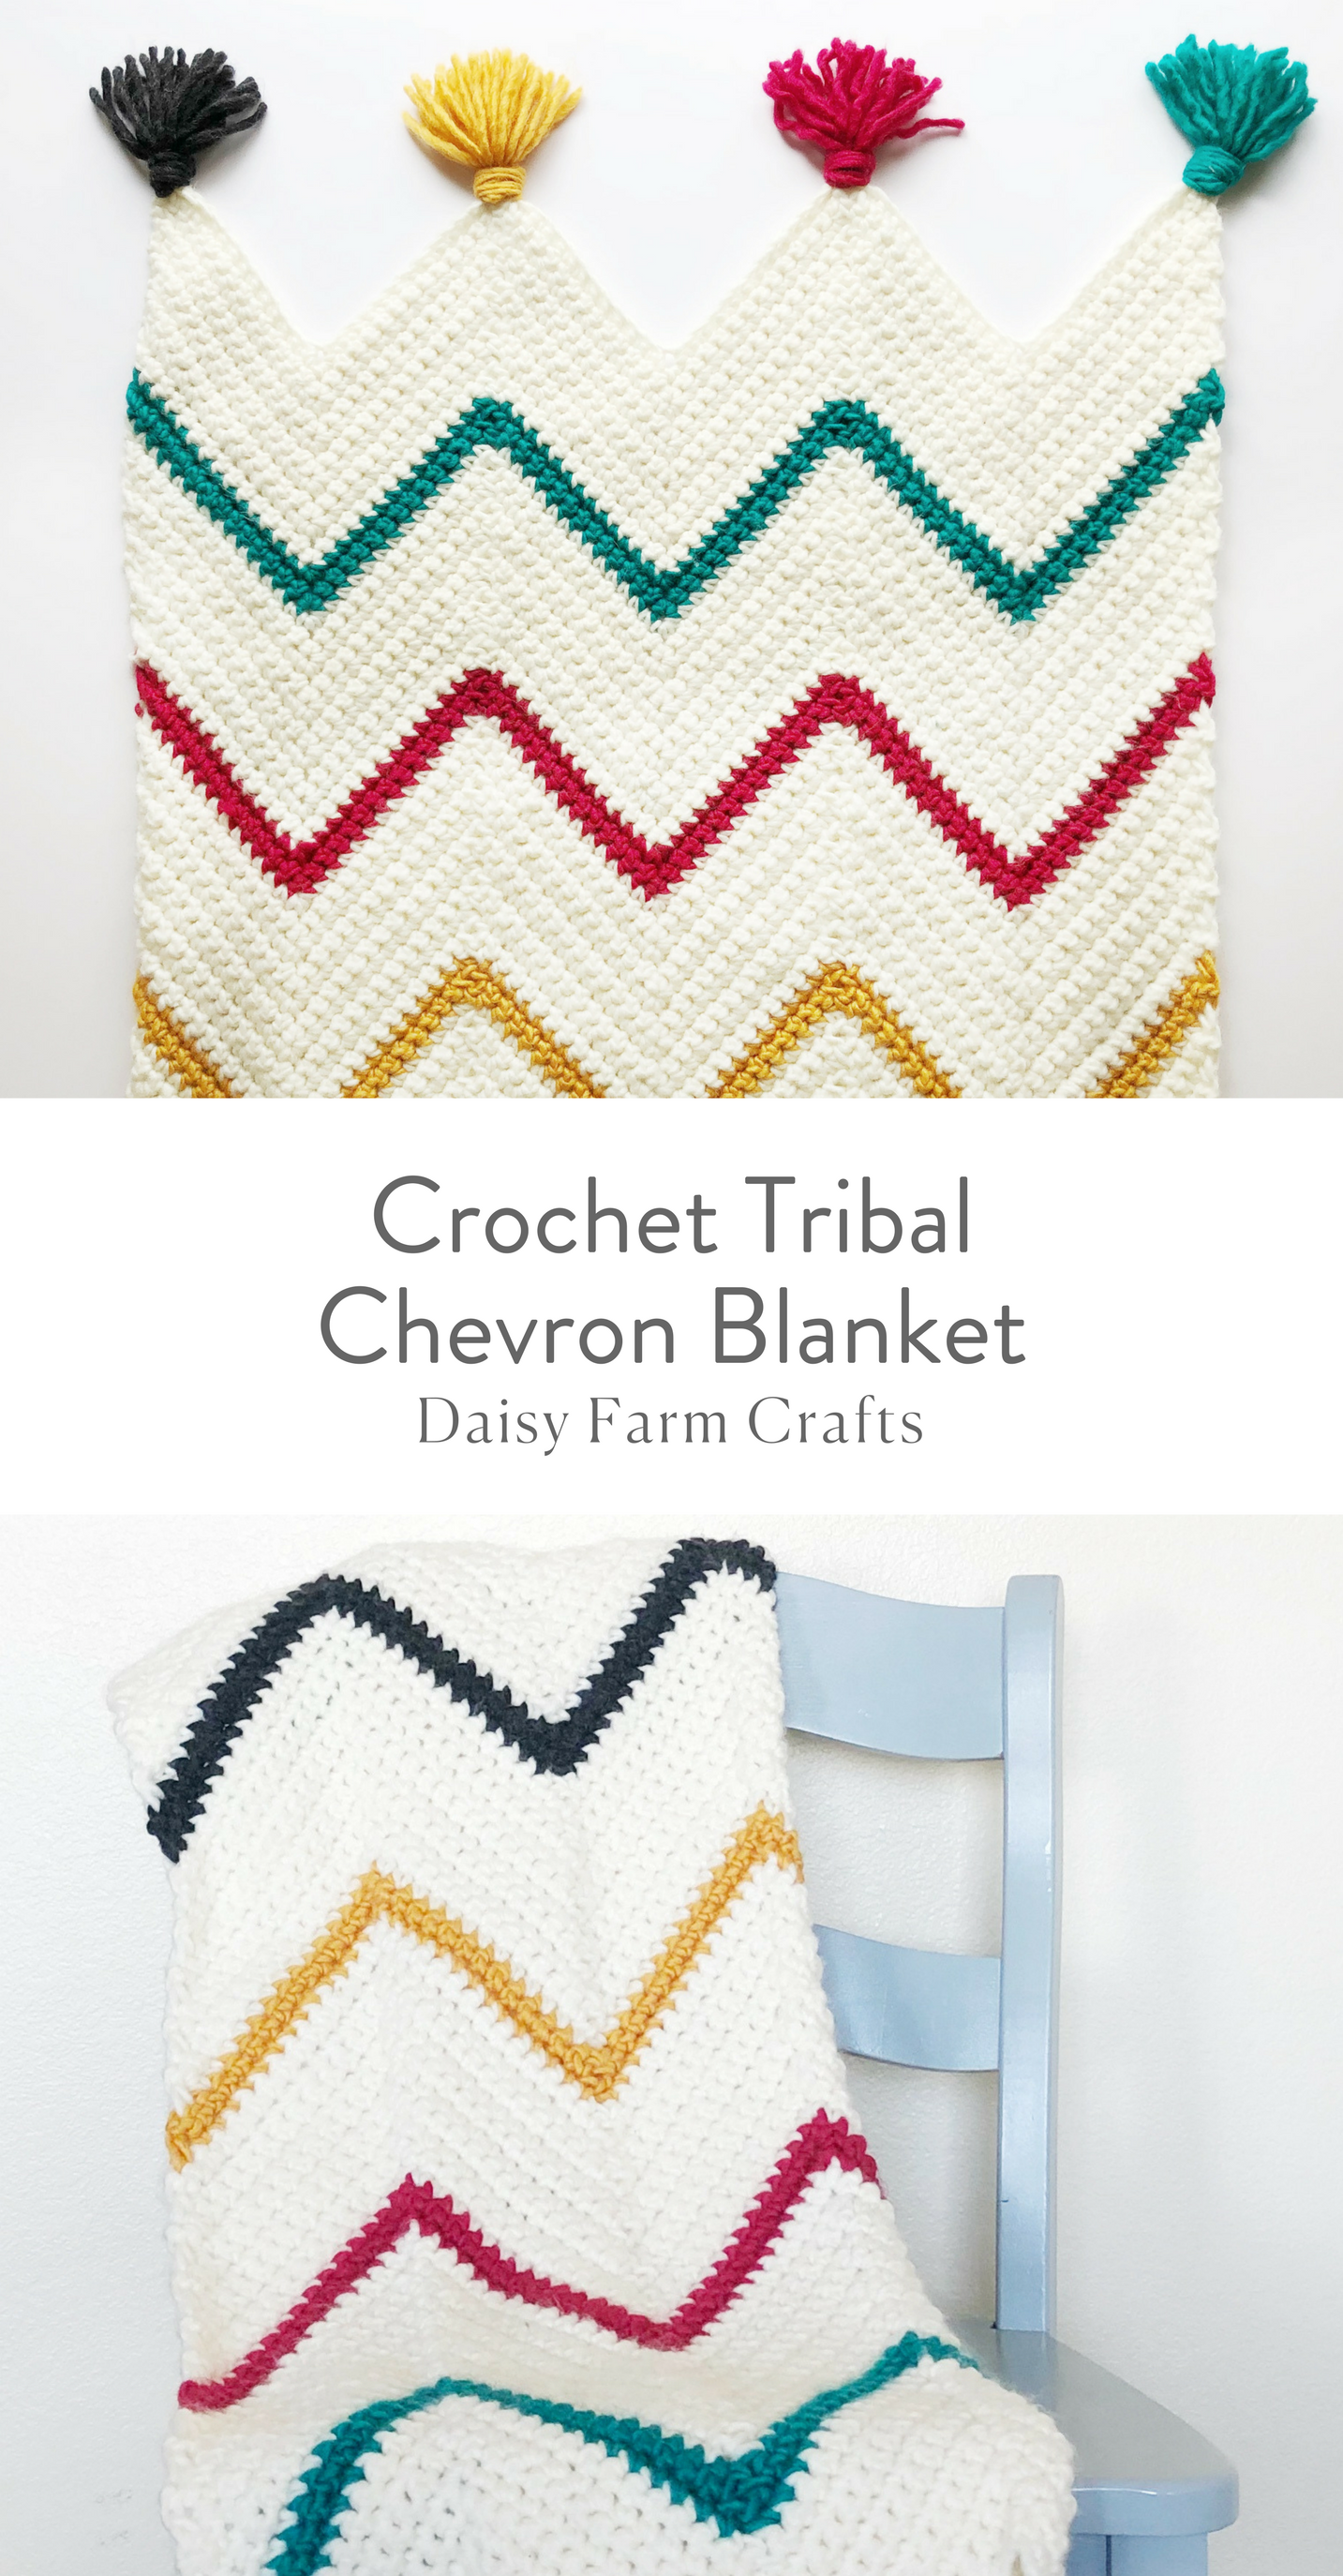 Free Pattern - Crochet Tribal Chevron Blanket | crochet | Pinterest ...